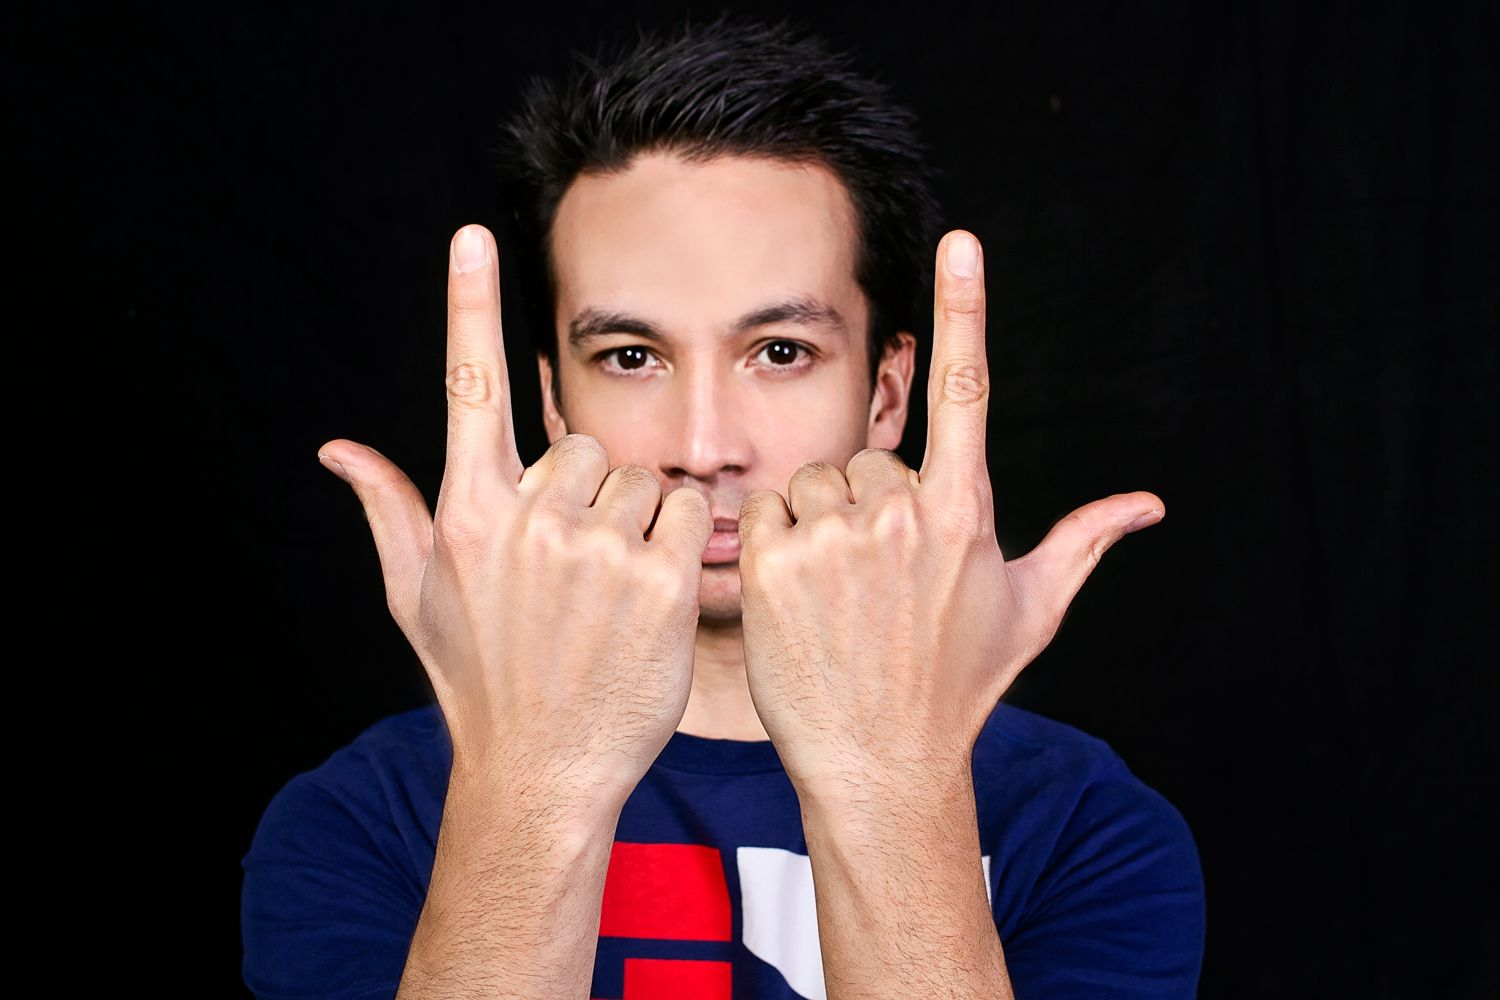 Laidback Luke Discusses New Track and Miami Music Week